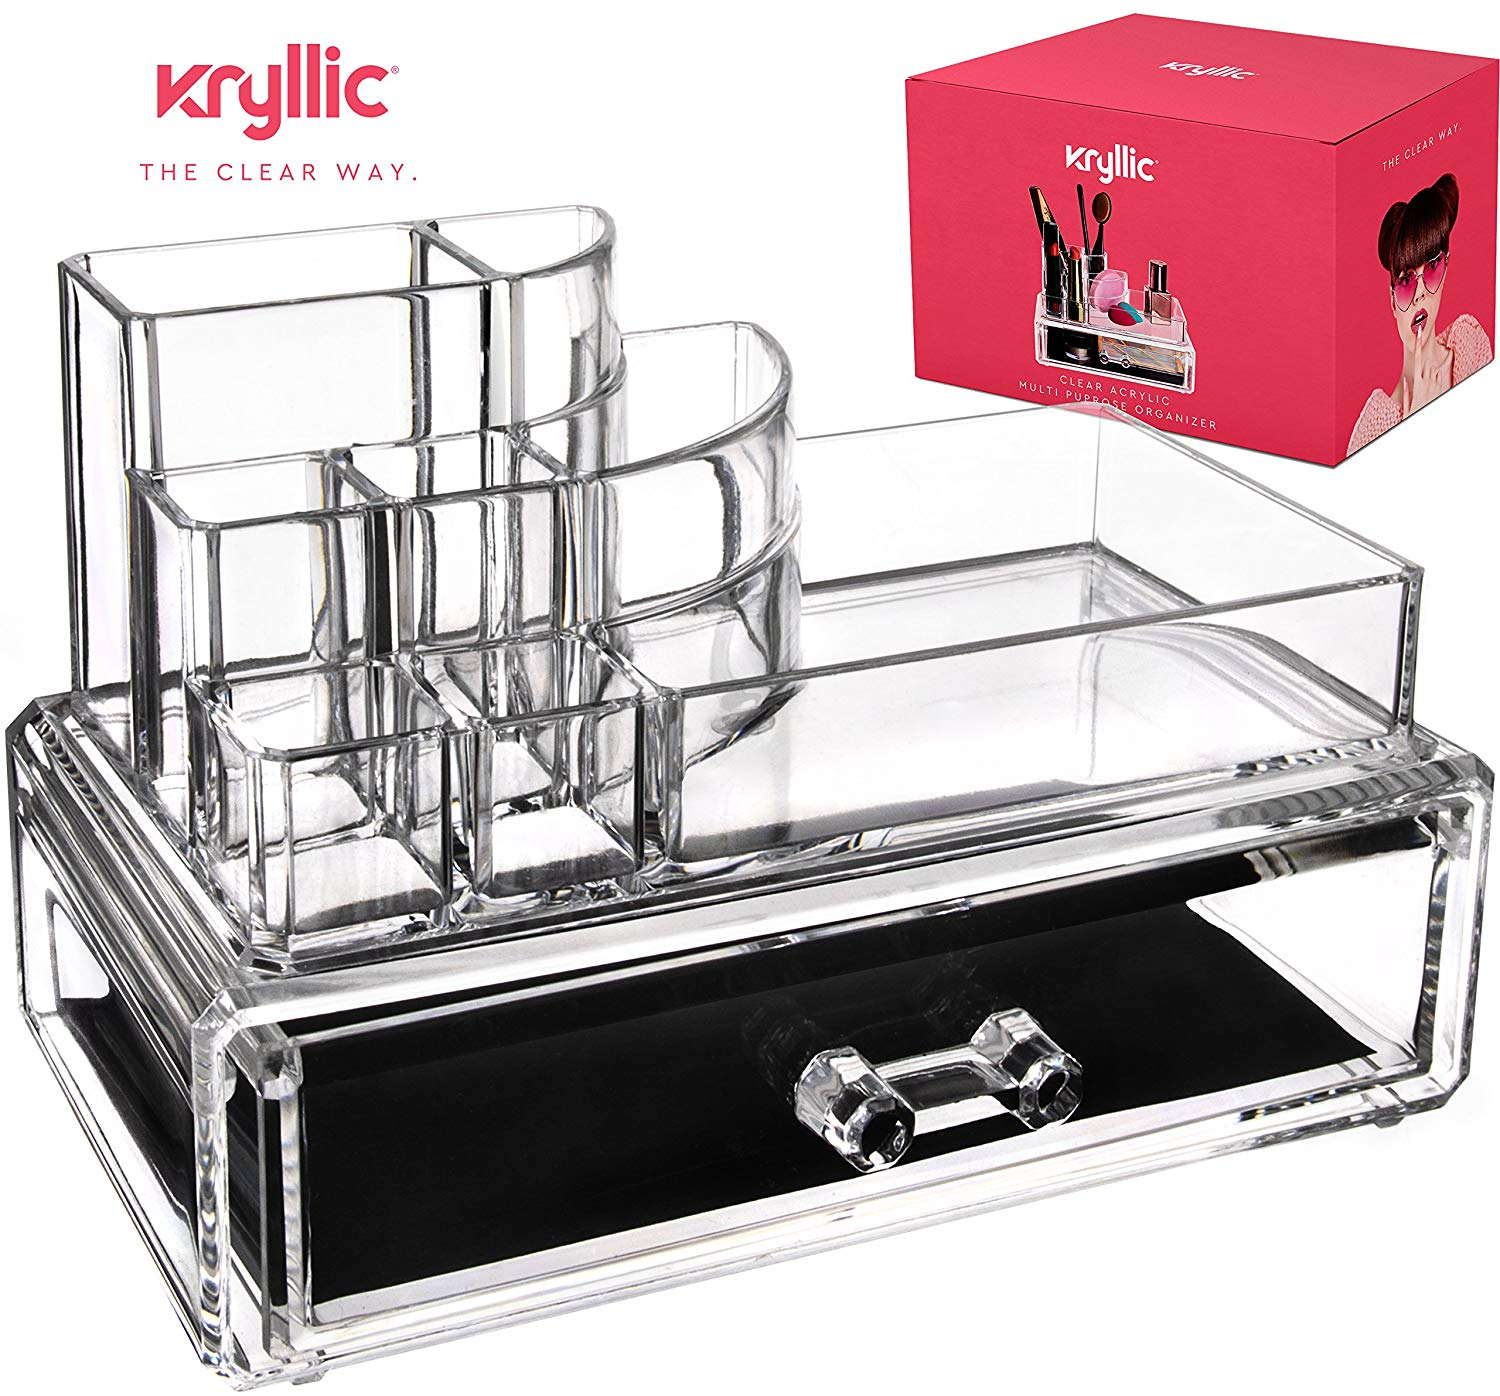 Acrylic Makeup jewelry cosmetic organizer - 2 Piece Set 1 Deep Drawer That Maneuver Smoothly With Separate Stackable lipstick & Nailpolish Holder Made With the Strong Thick Acrylic